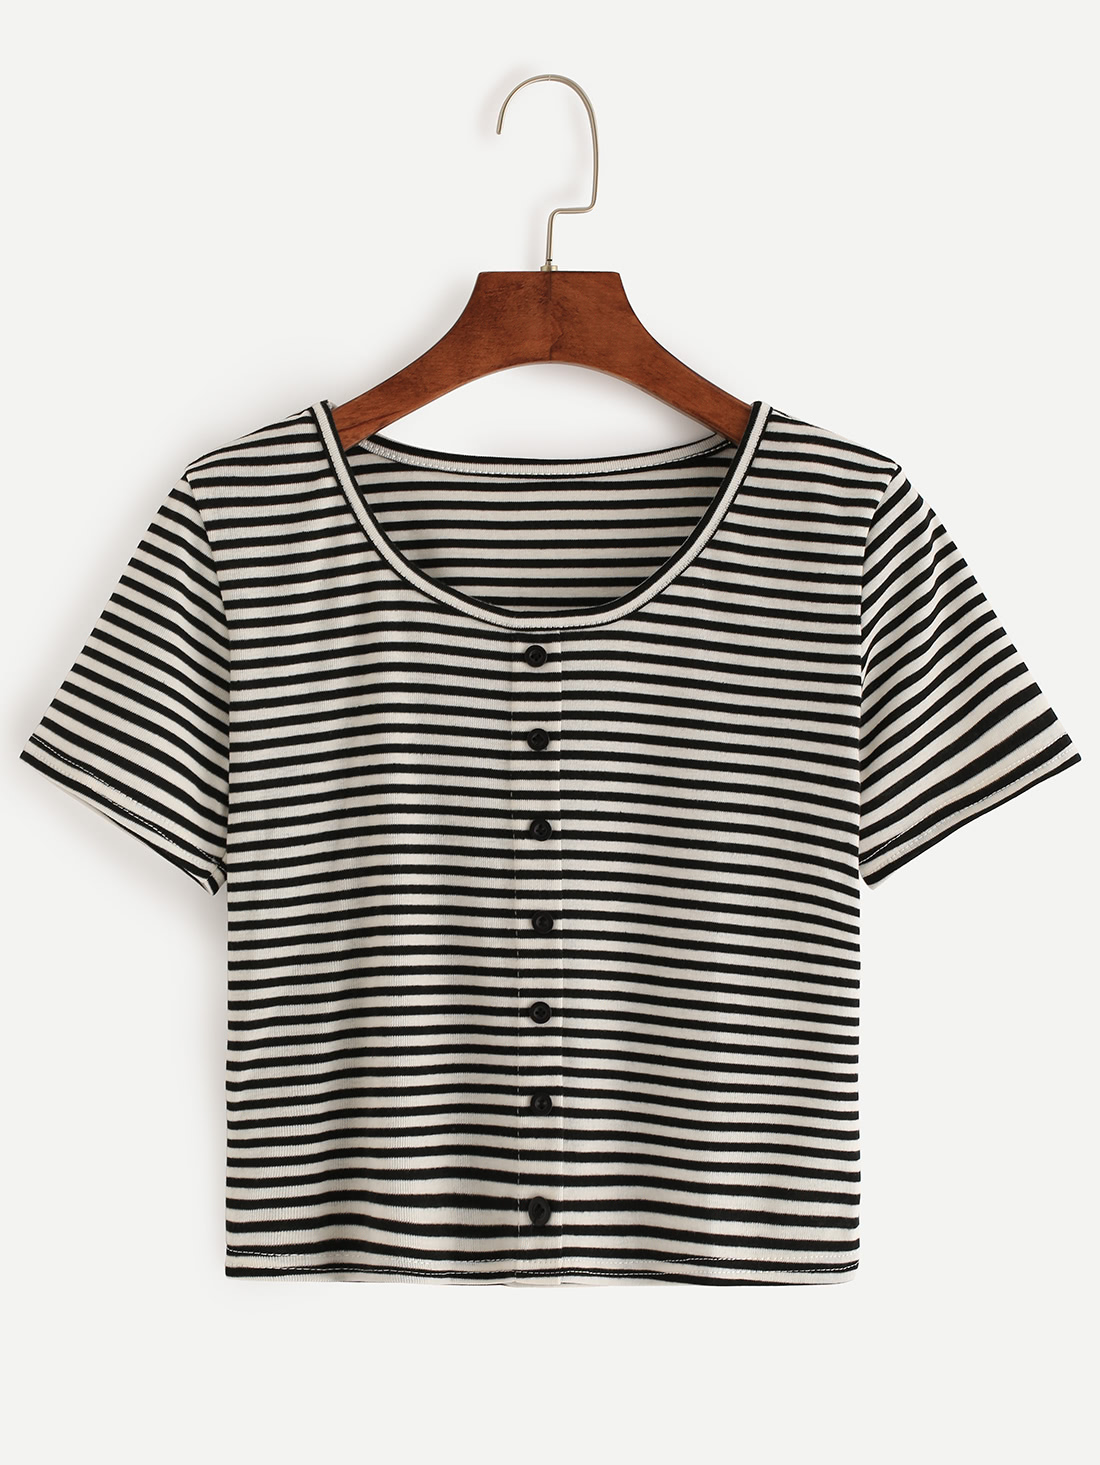 Inexpensive Fall Women's Shirts Under $20 - Mommy Blogger-VLogger -- The Overwhelmed Mommy